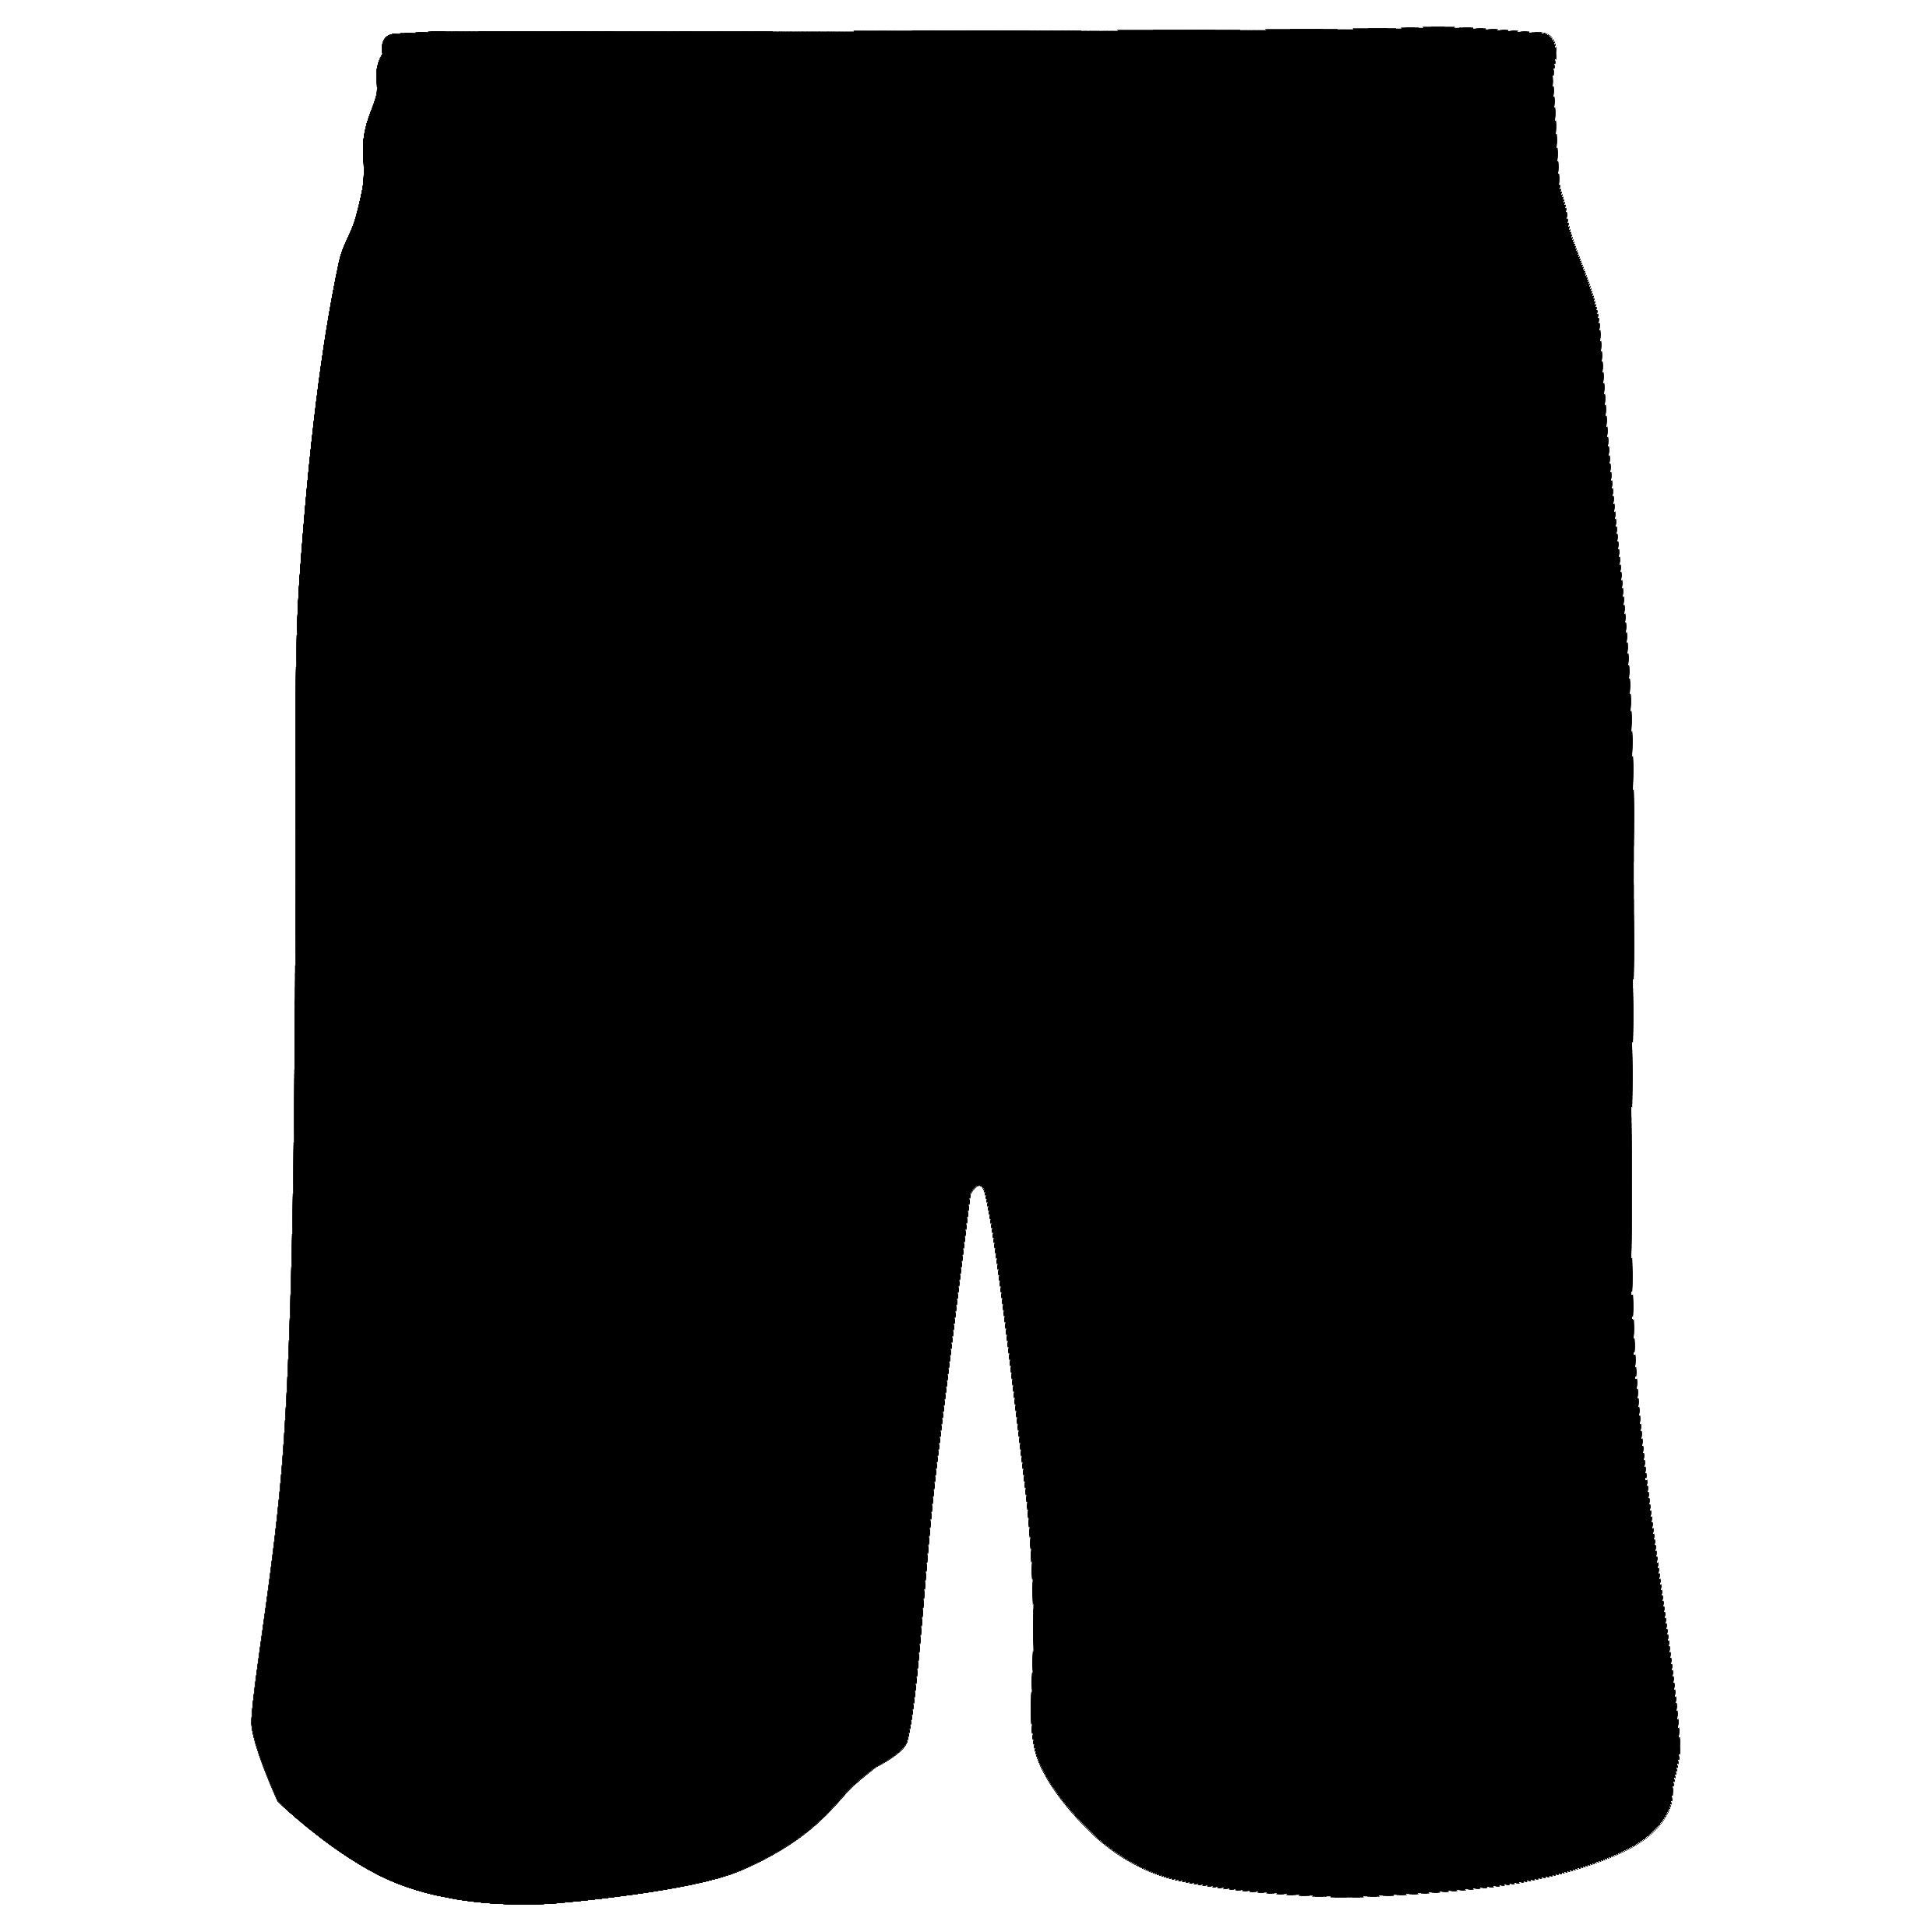 Manchester United Home Goalkeeper Shorts 2013/14